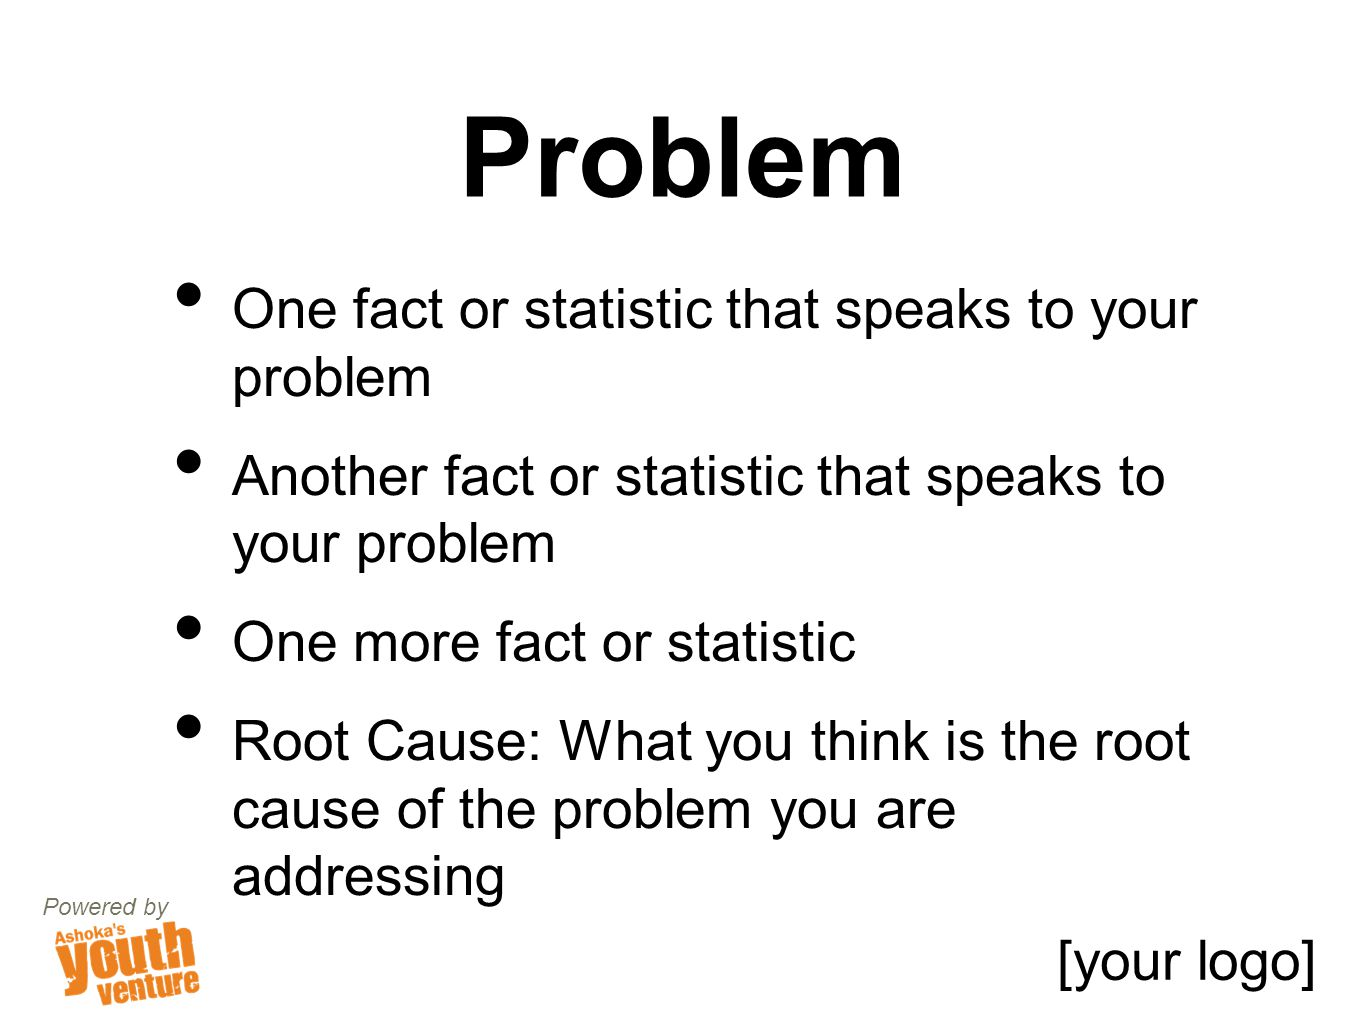 Problem One fact or statistic that speaks to your problem Another fact or statistic that speaks to your problem One more fact or statistic Root Cause: What you think is the root cause of the problem you are addressing Powered by [your logo]